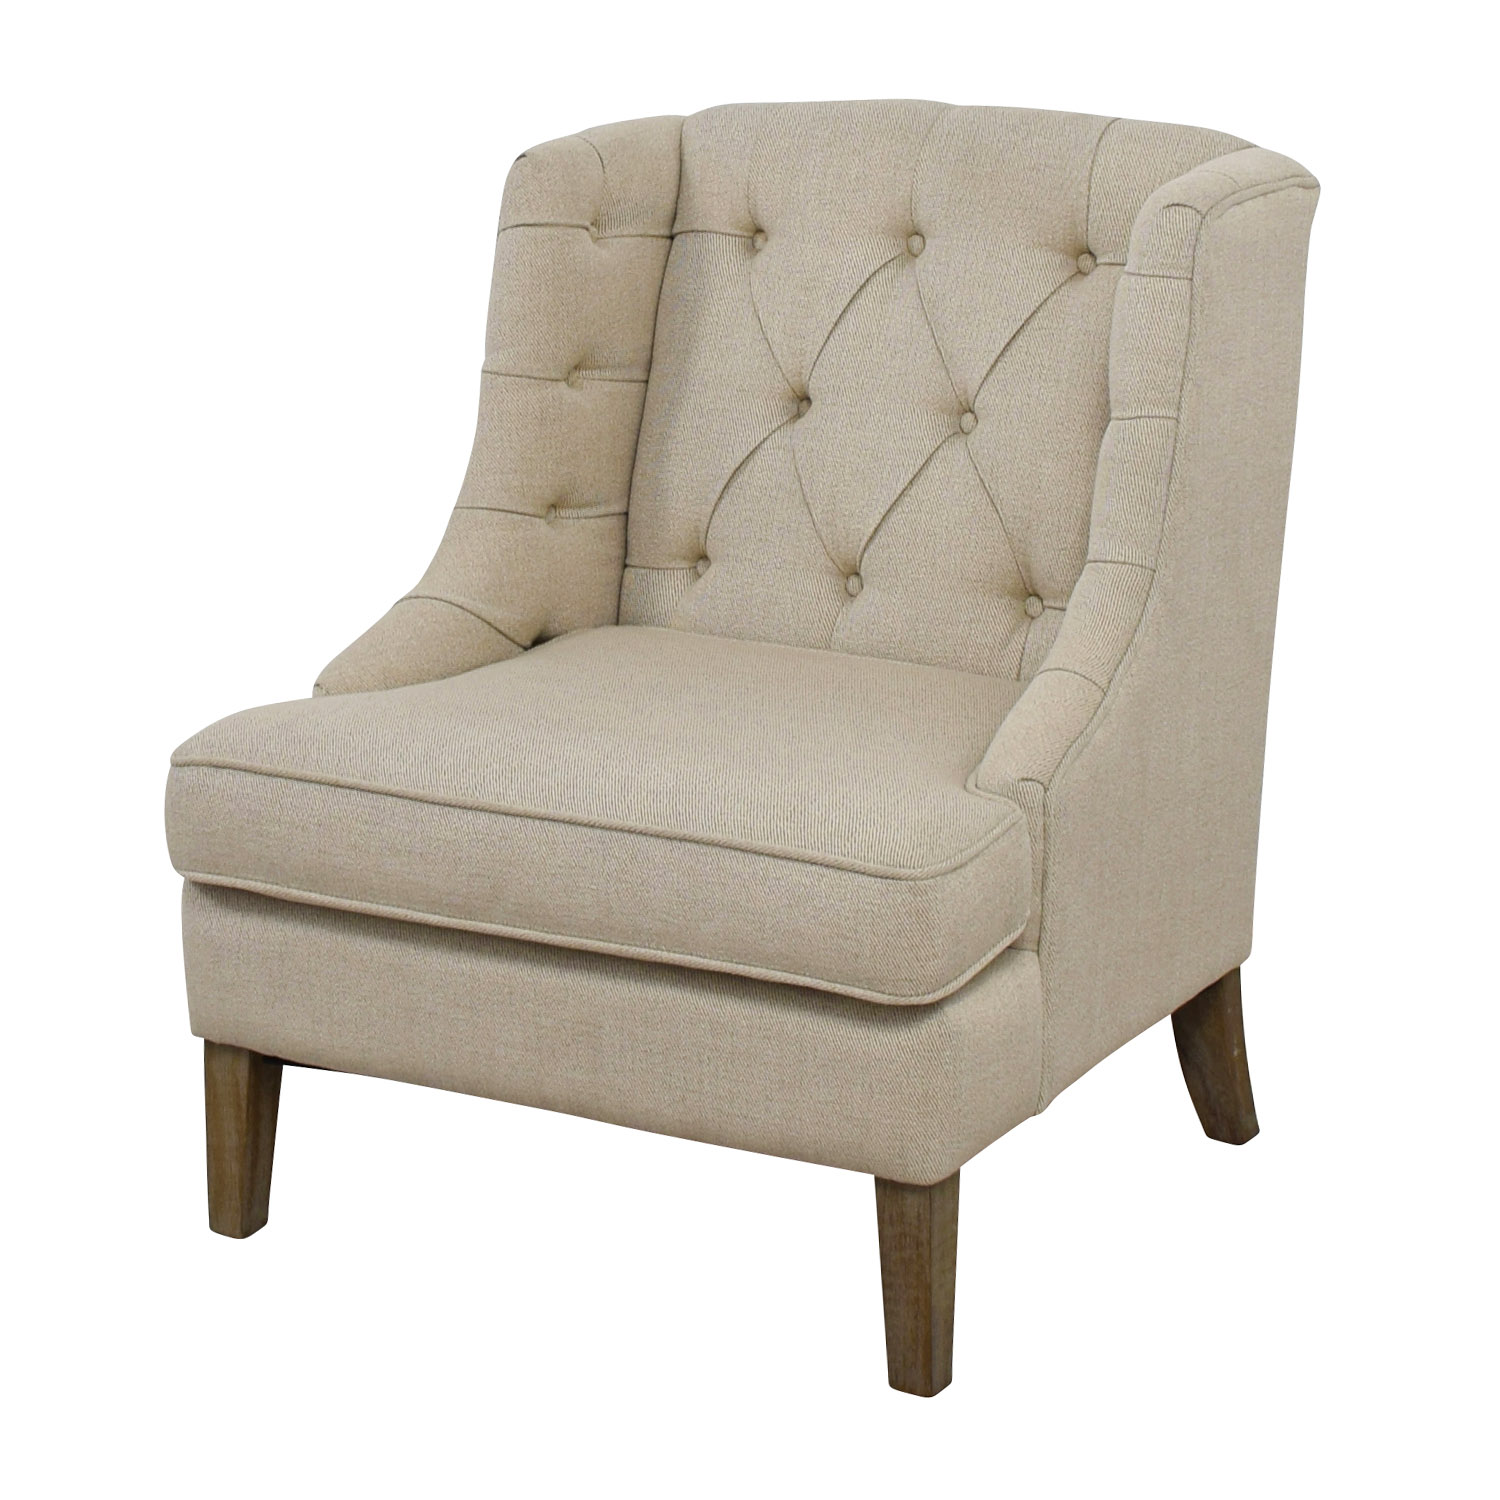 Madison Park Tufted Beige Arm Chair / Chairs